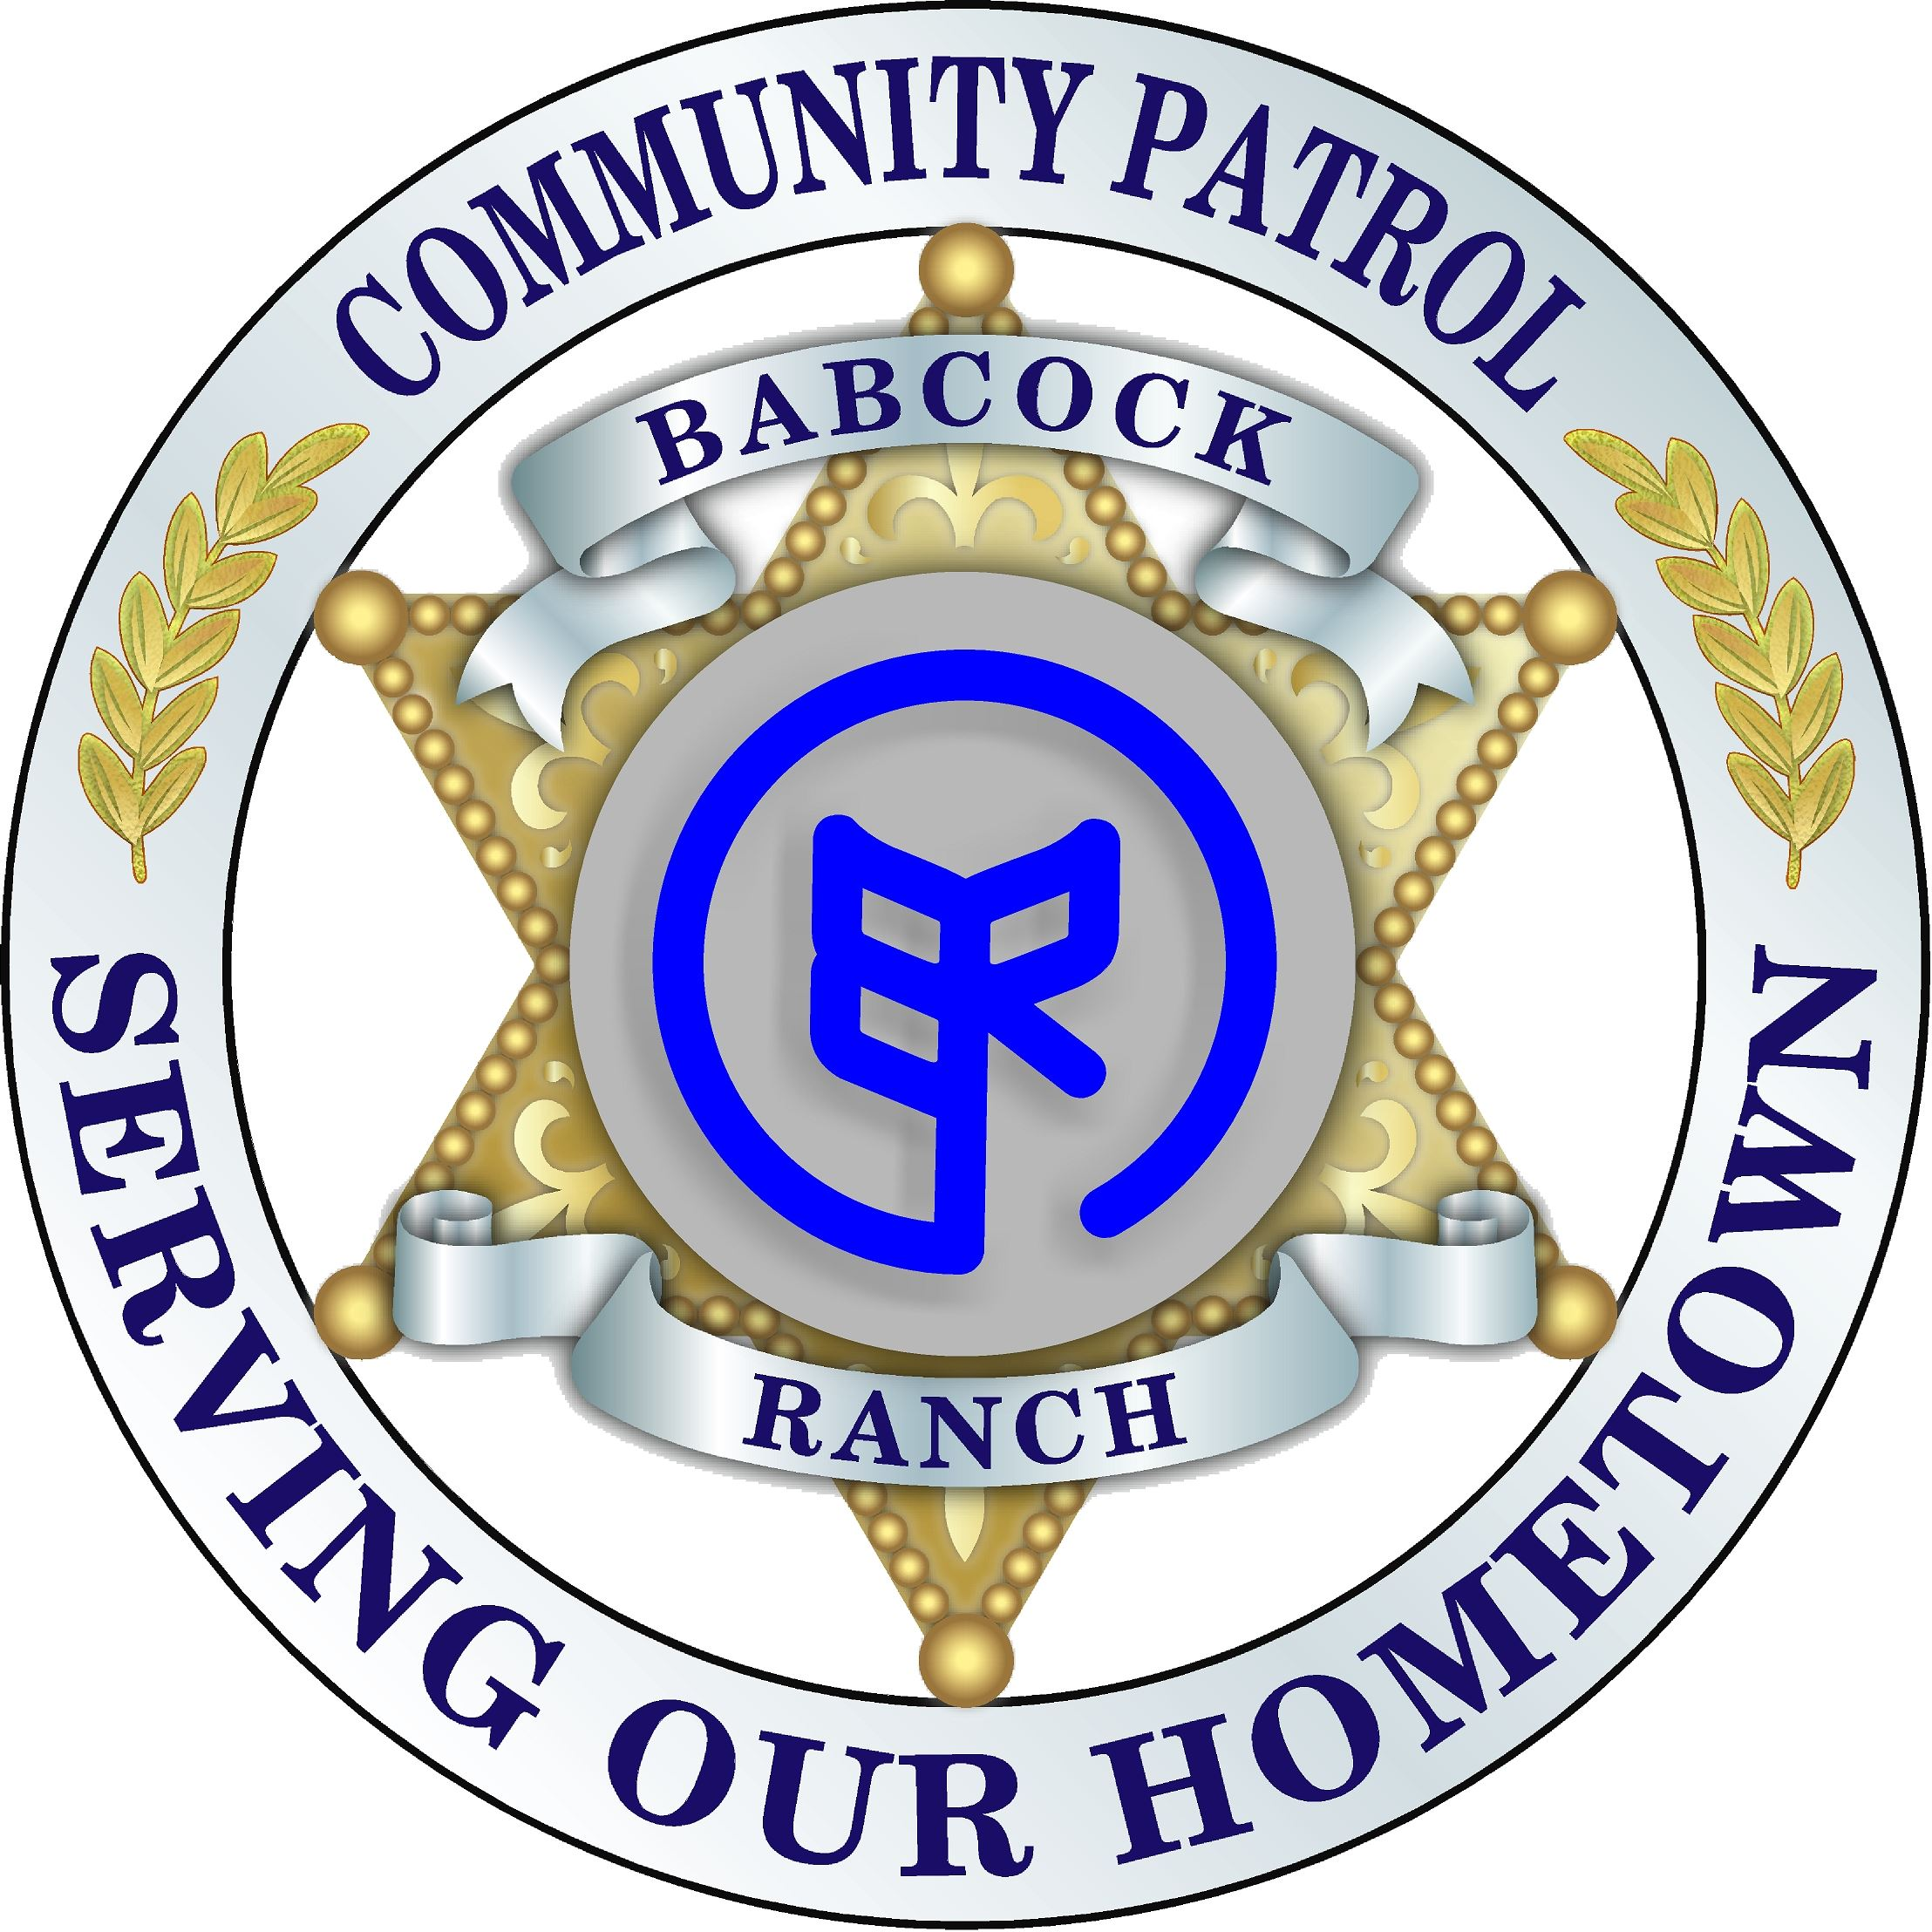 Babcock Ranch Community Patrol final logo.v2